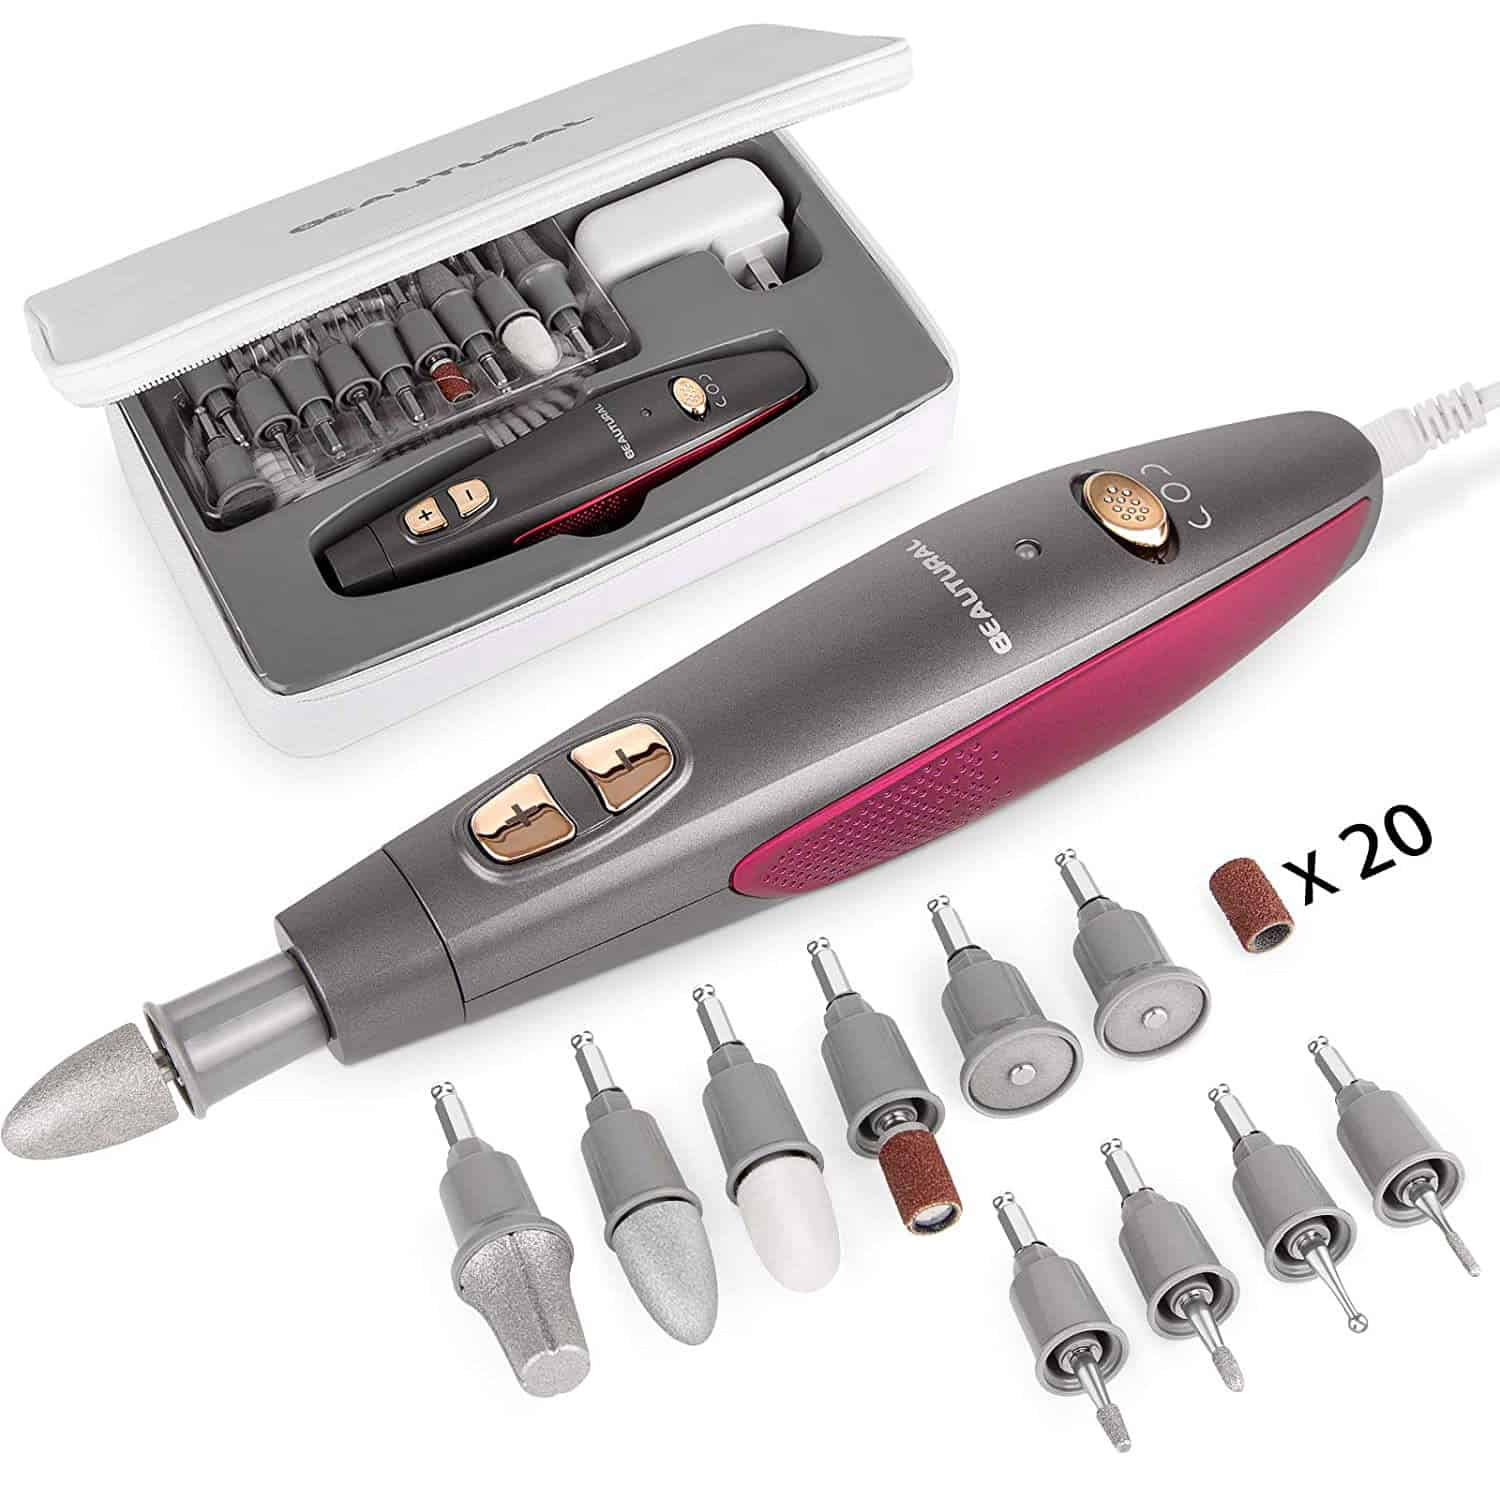 BEAUTURAL Professional Manicure and Pedicure Kit